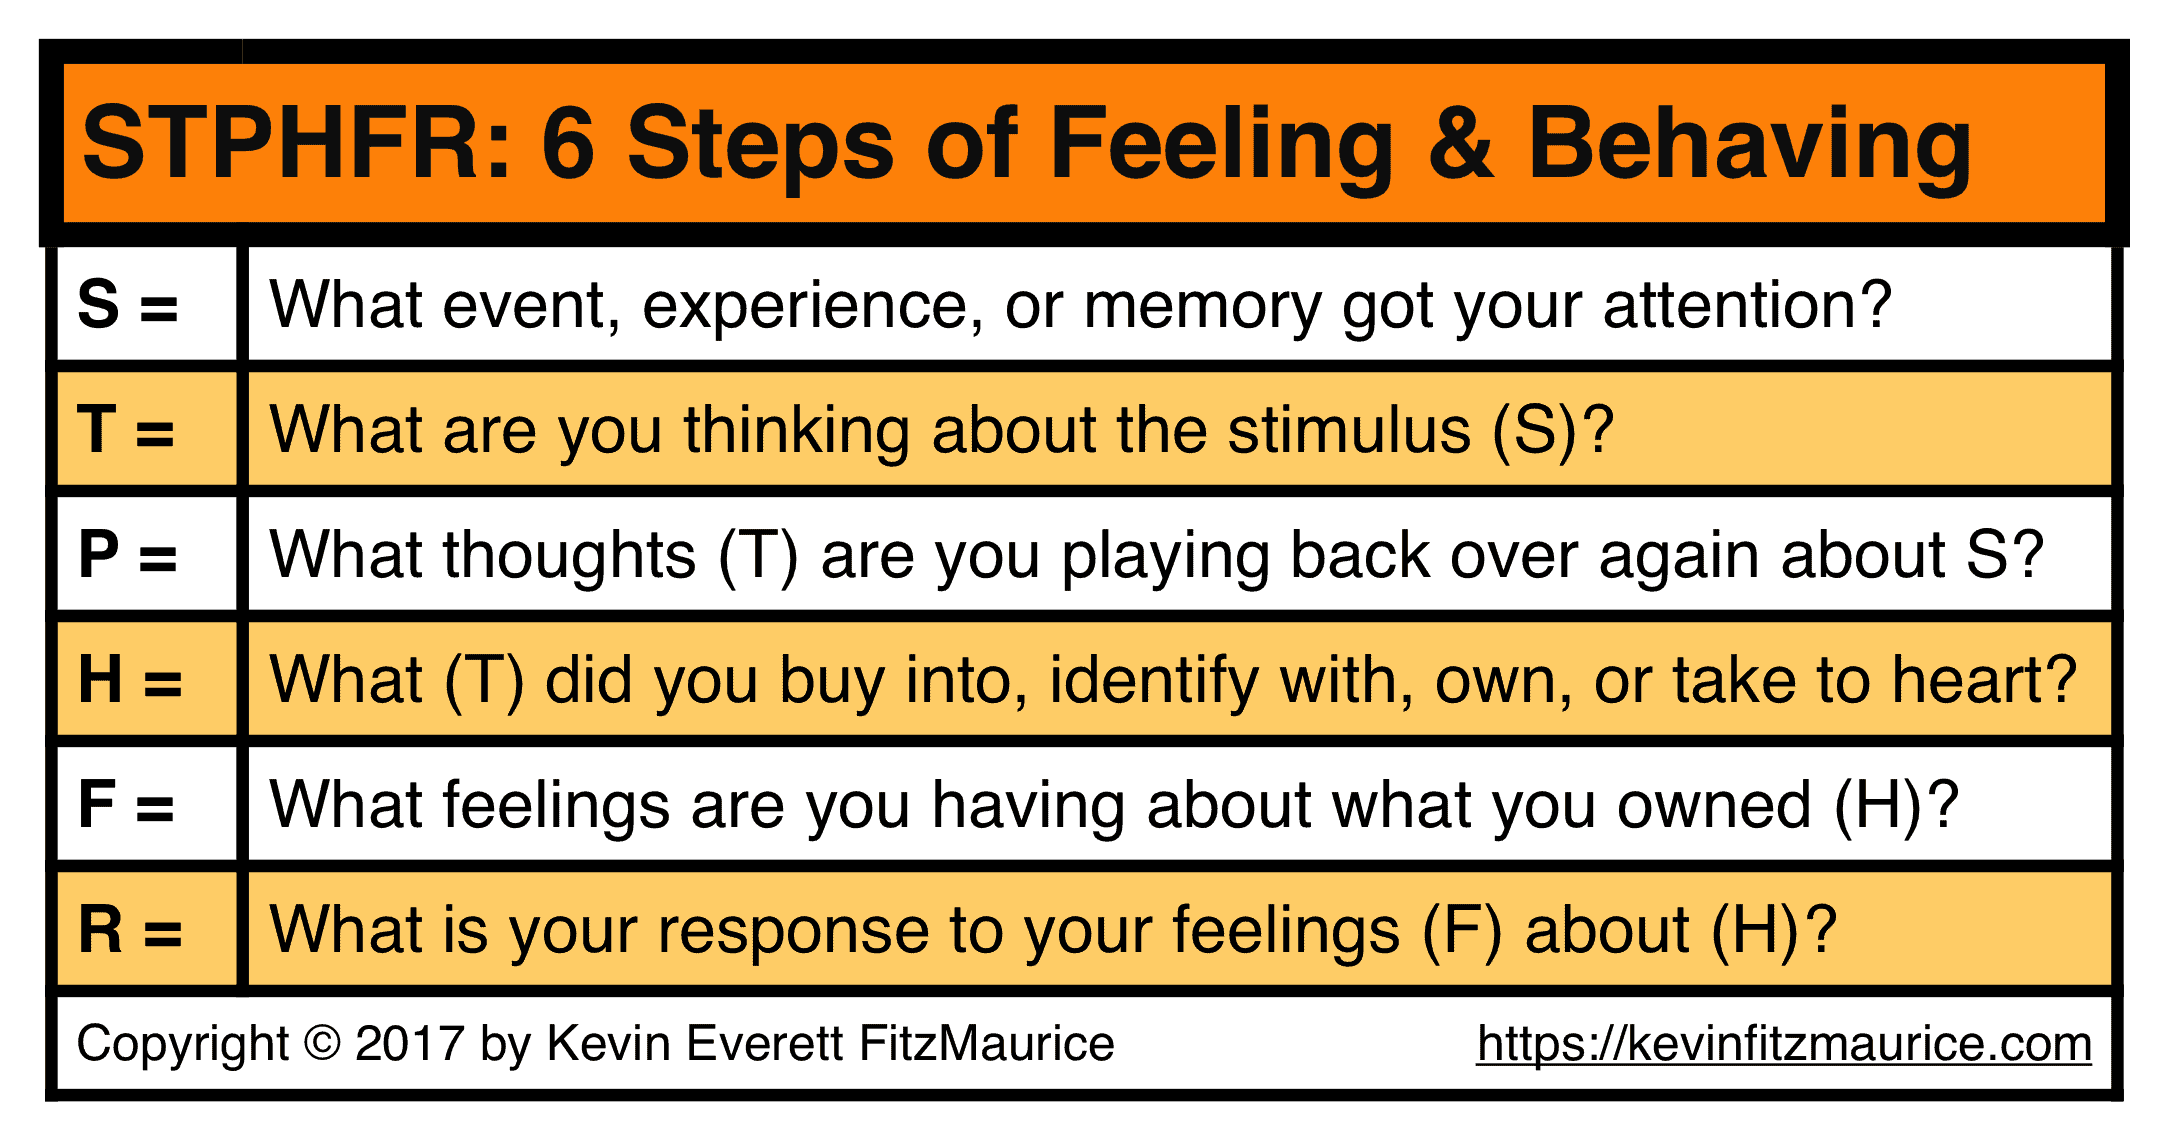 STPHFR 6 Steps of Feeling & Acting